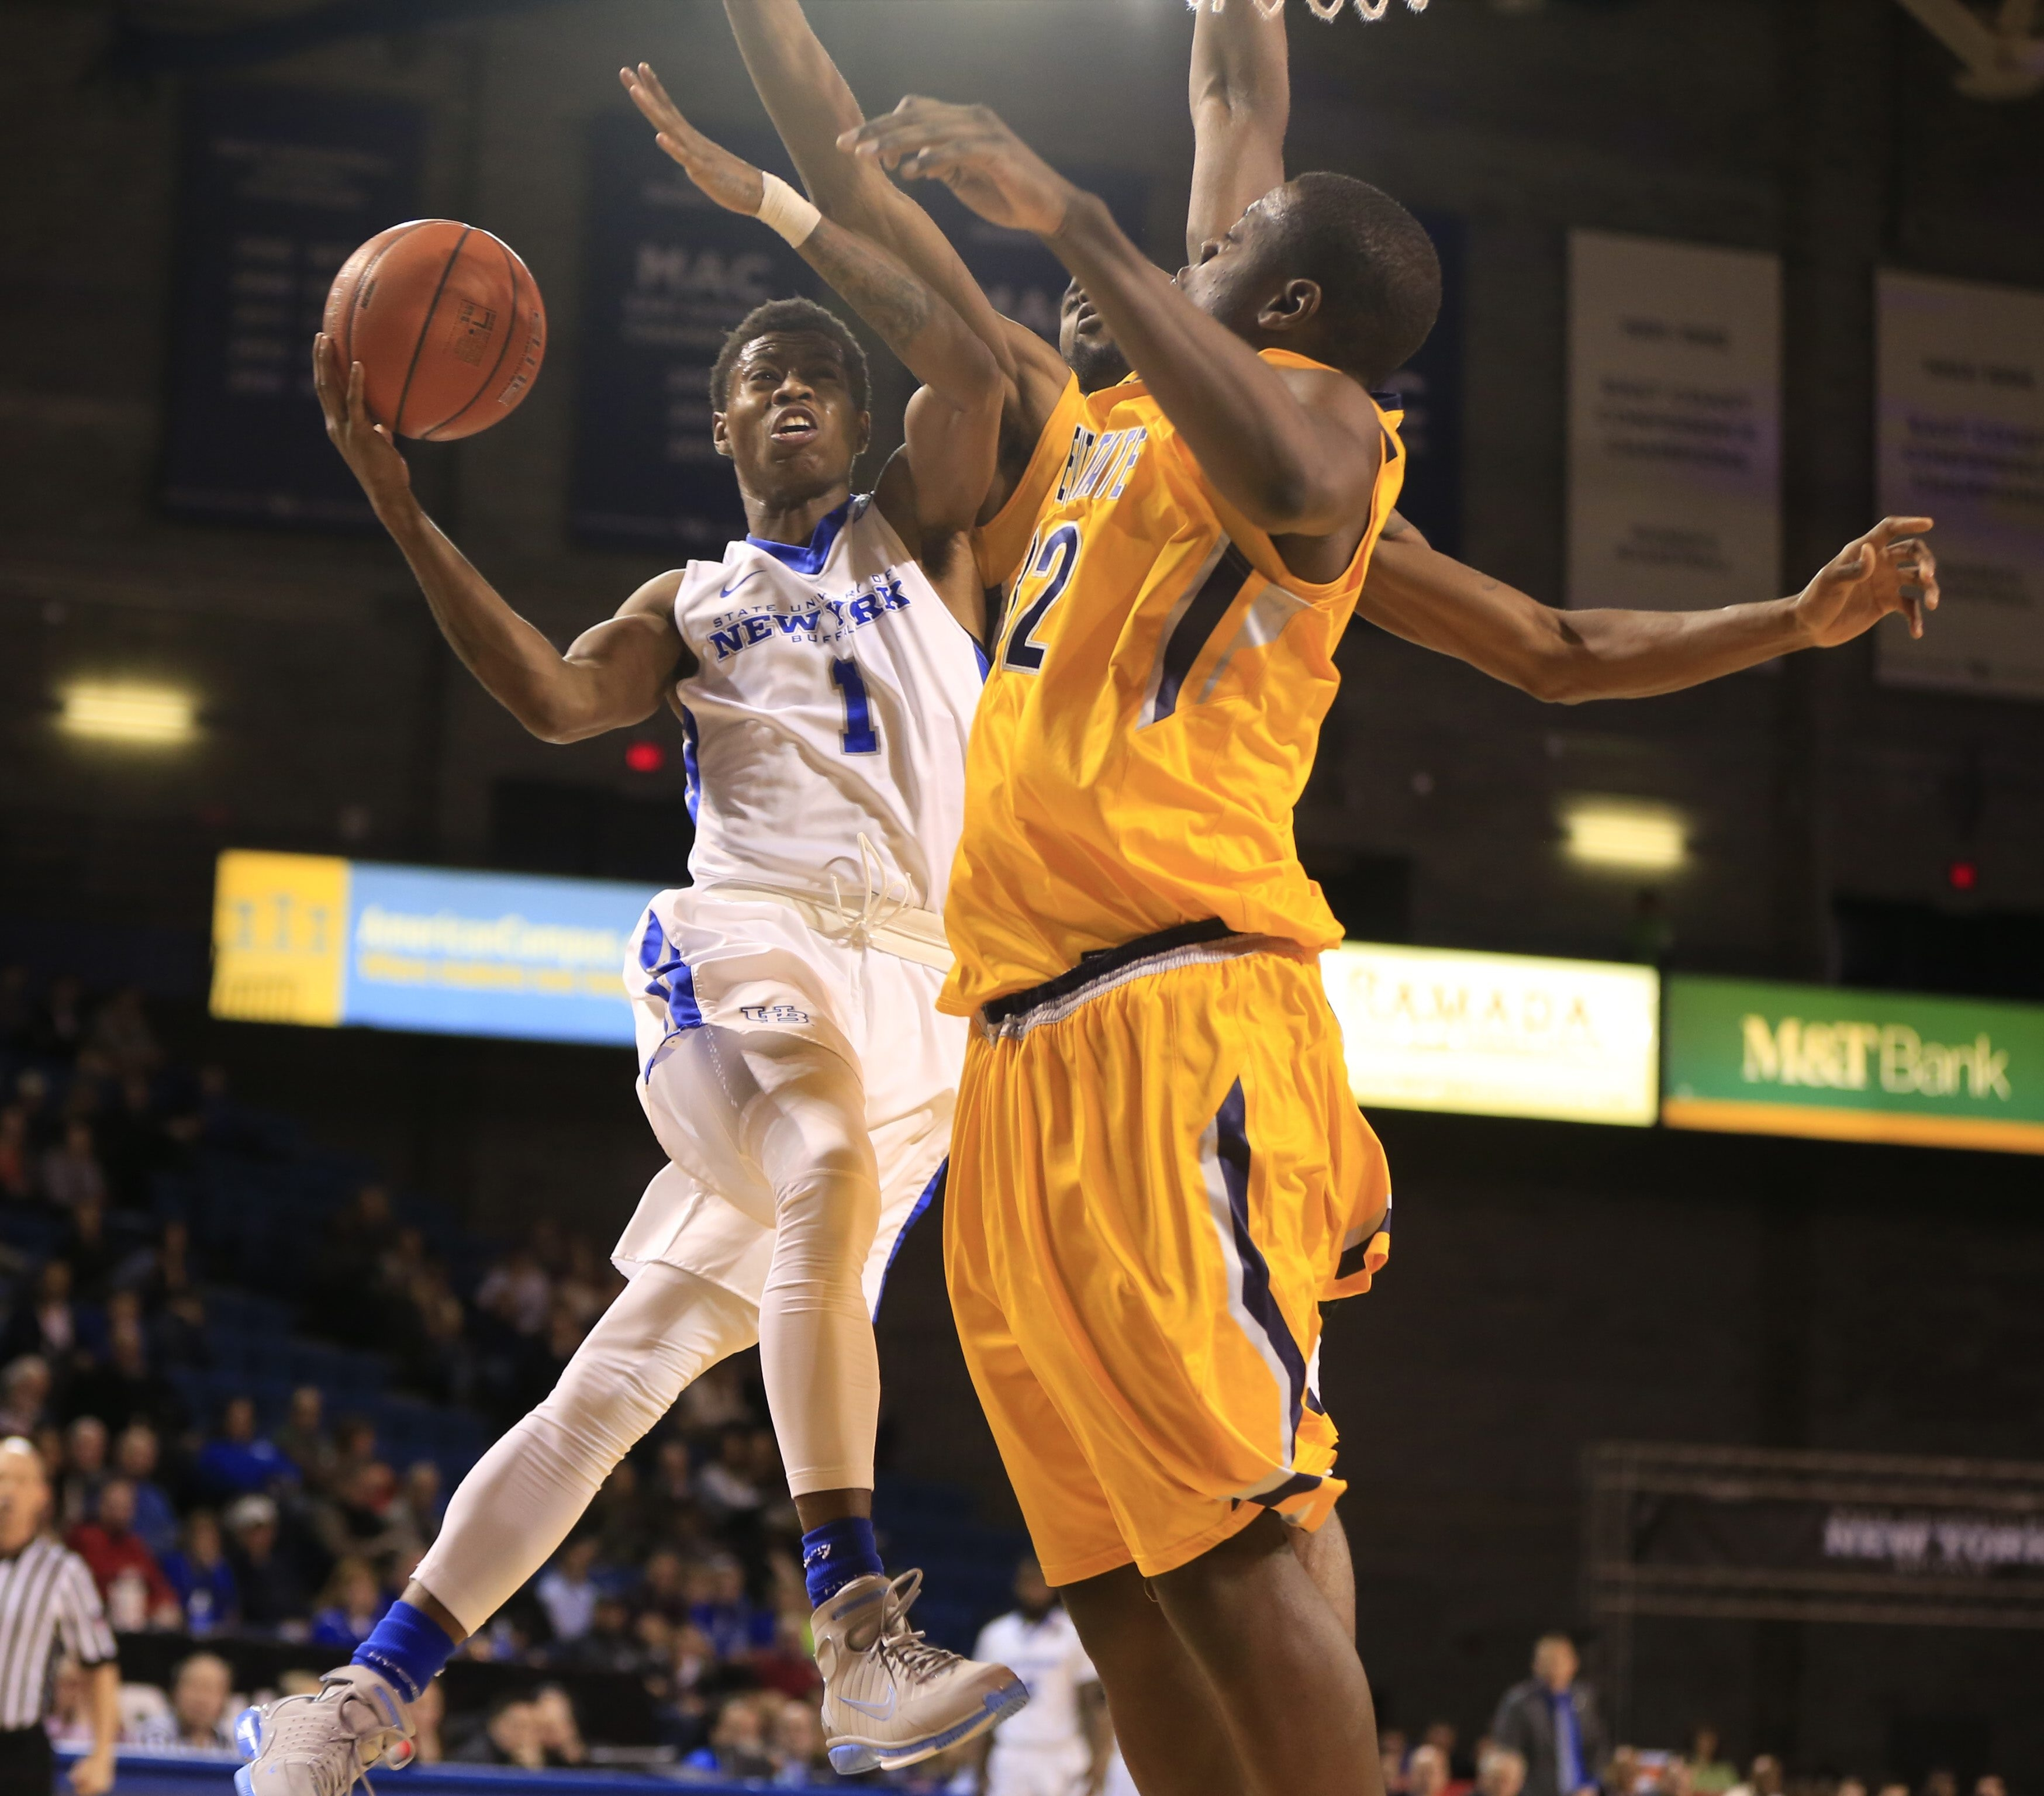 University at Buffalo's Lamonte Bearden drives to the basket against Kent State Tuesday at Alumni Arena.